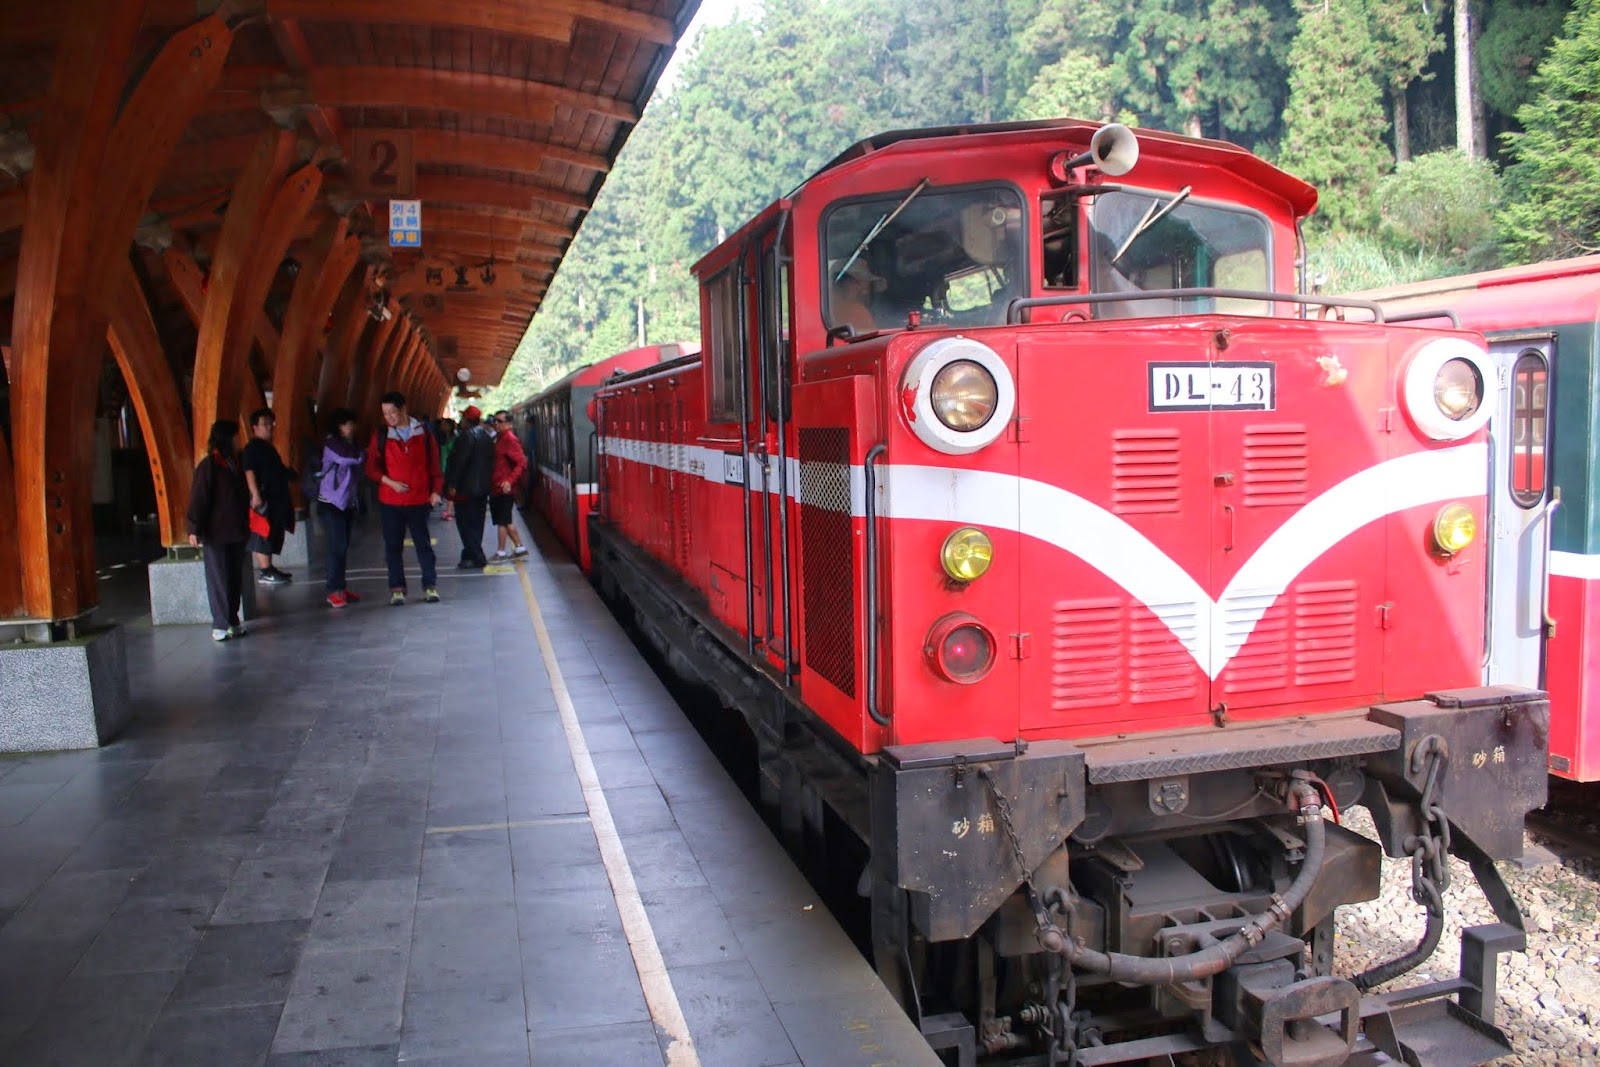 A closer look at the old train at Forest Railway Alishan Station at Alishan National Scenic Area in Chiayi County of Taiwan